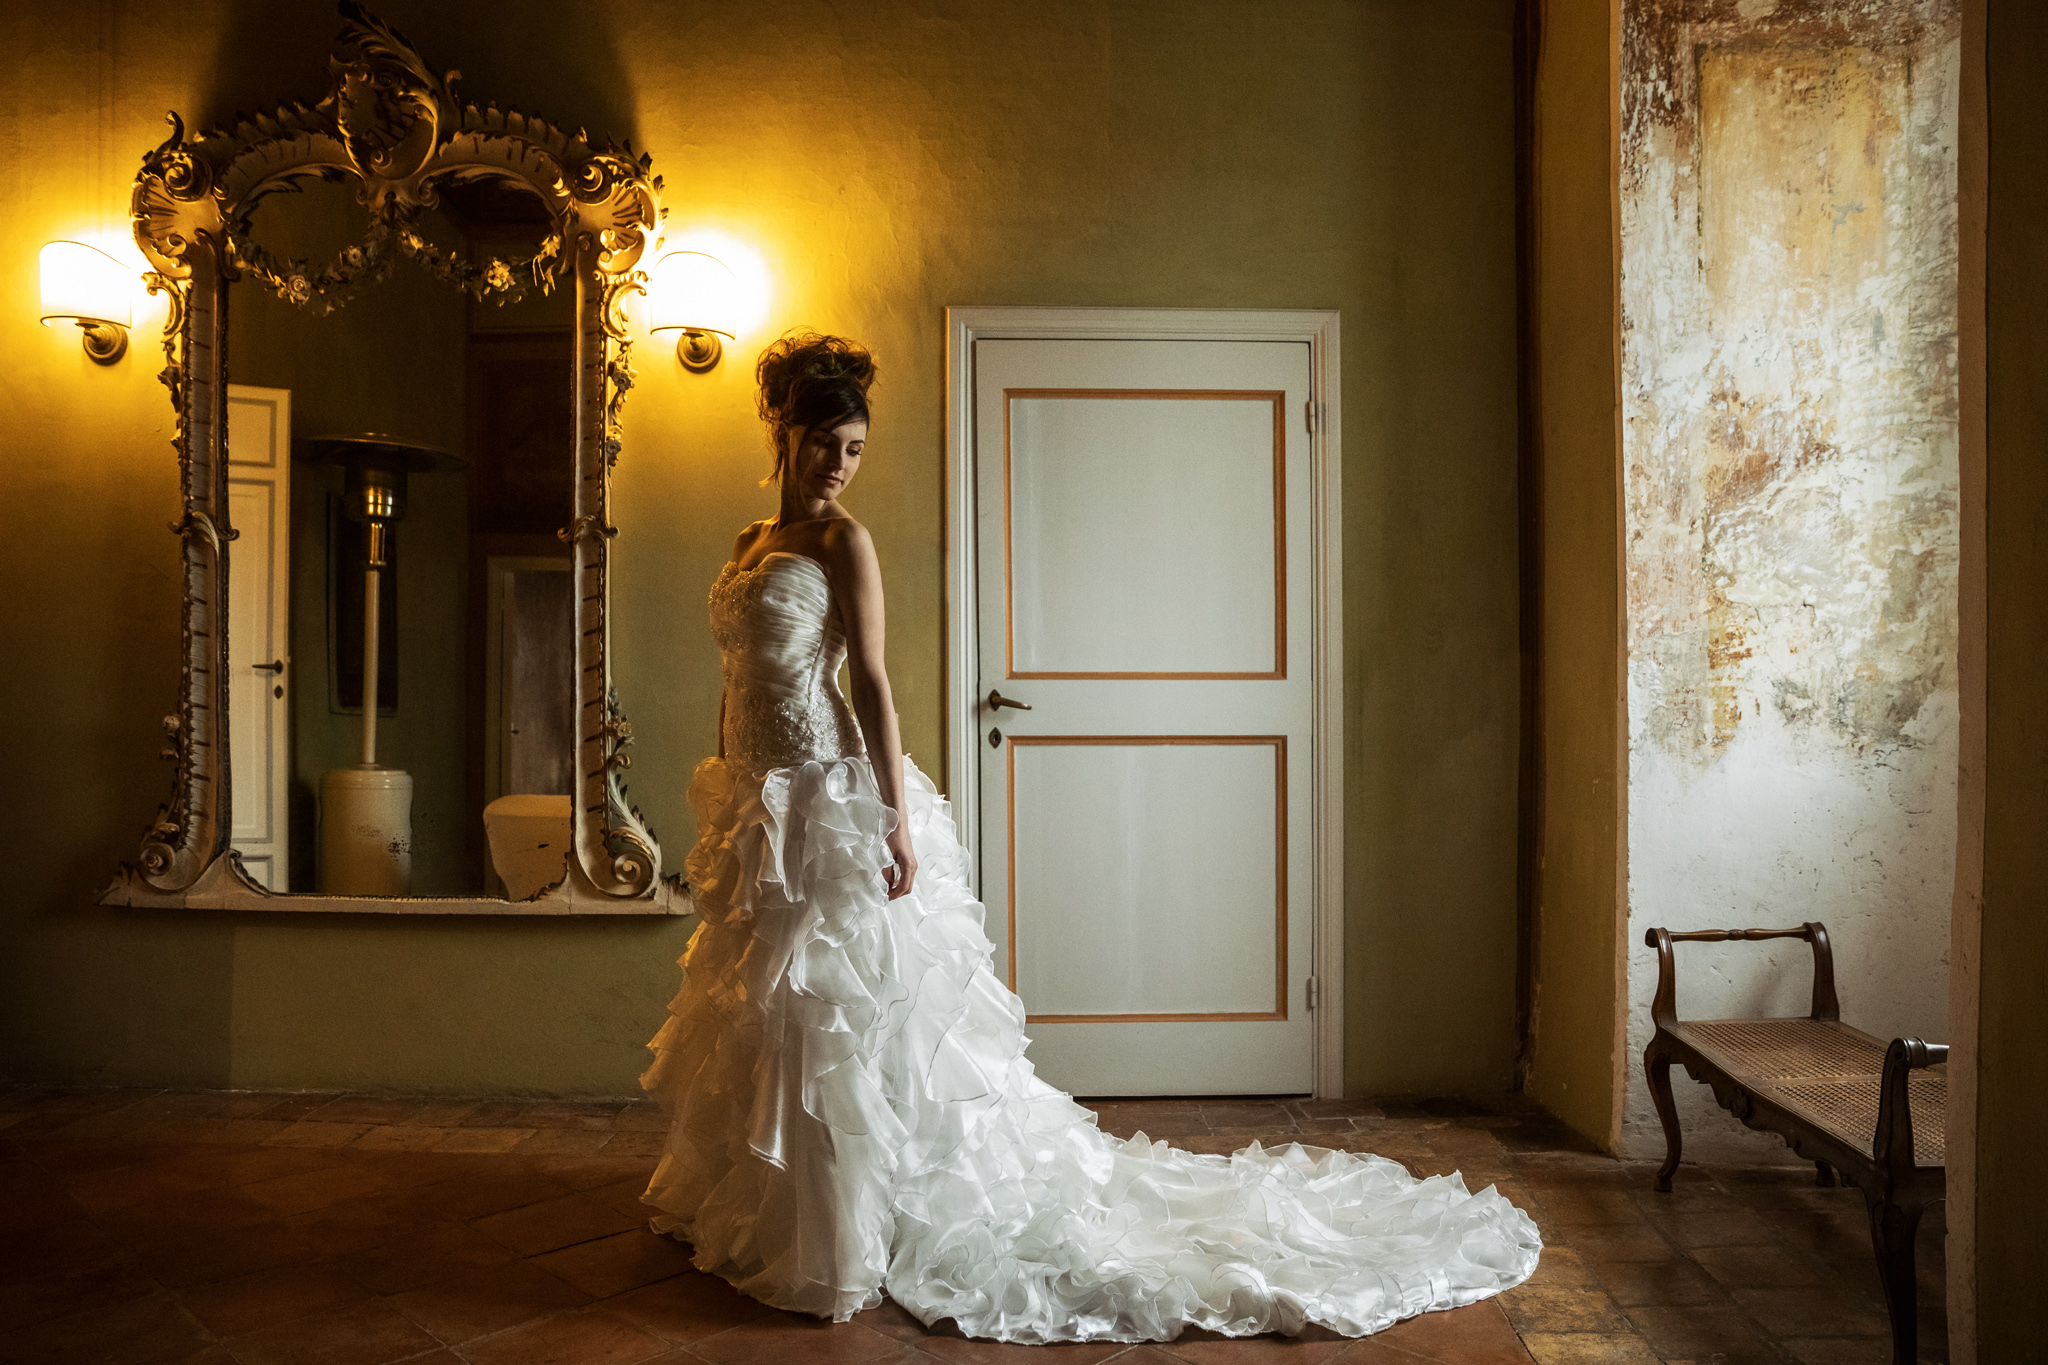 the bride at the Ceri Castle in a picture by Fabio Schiazza